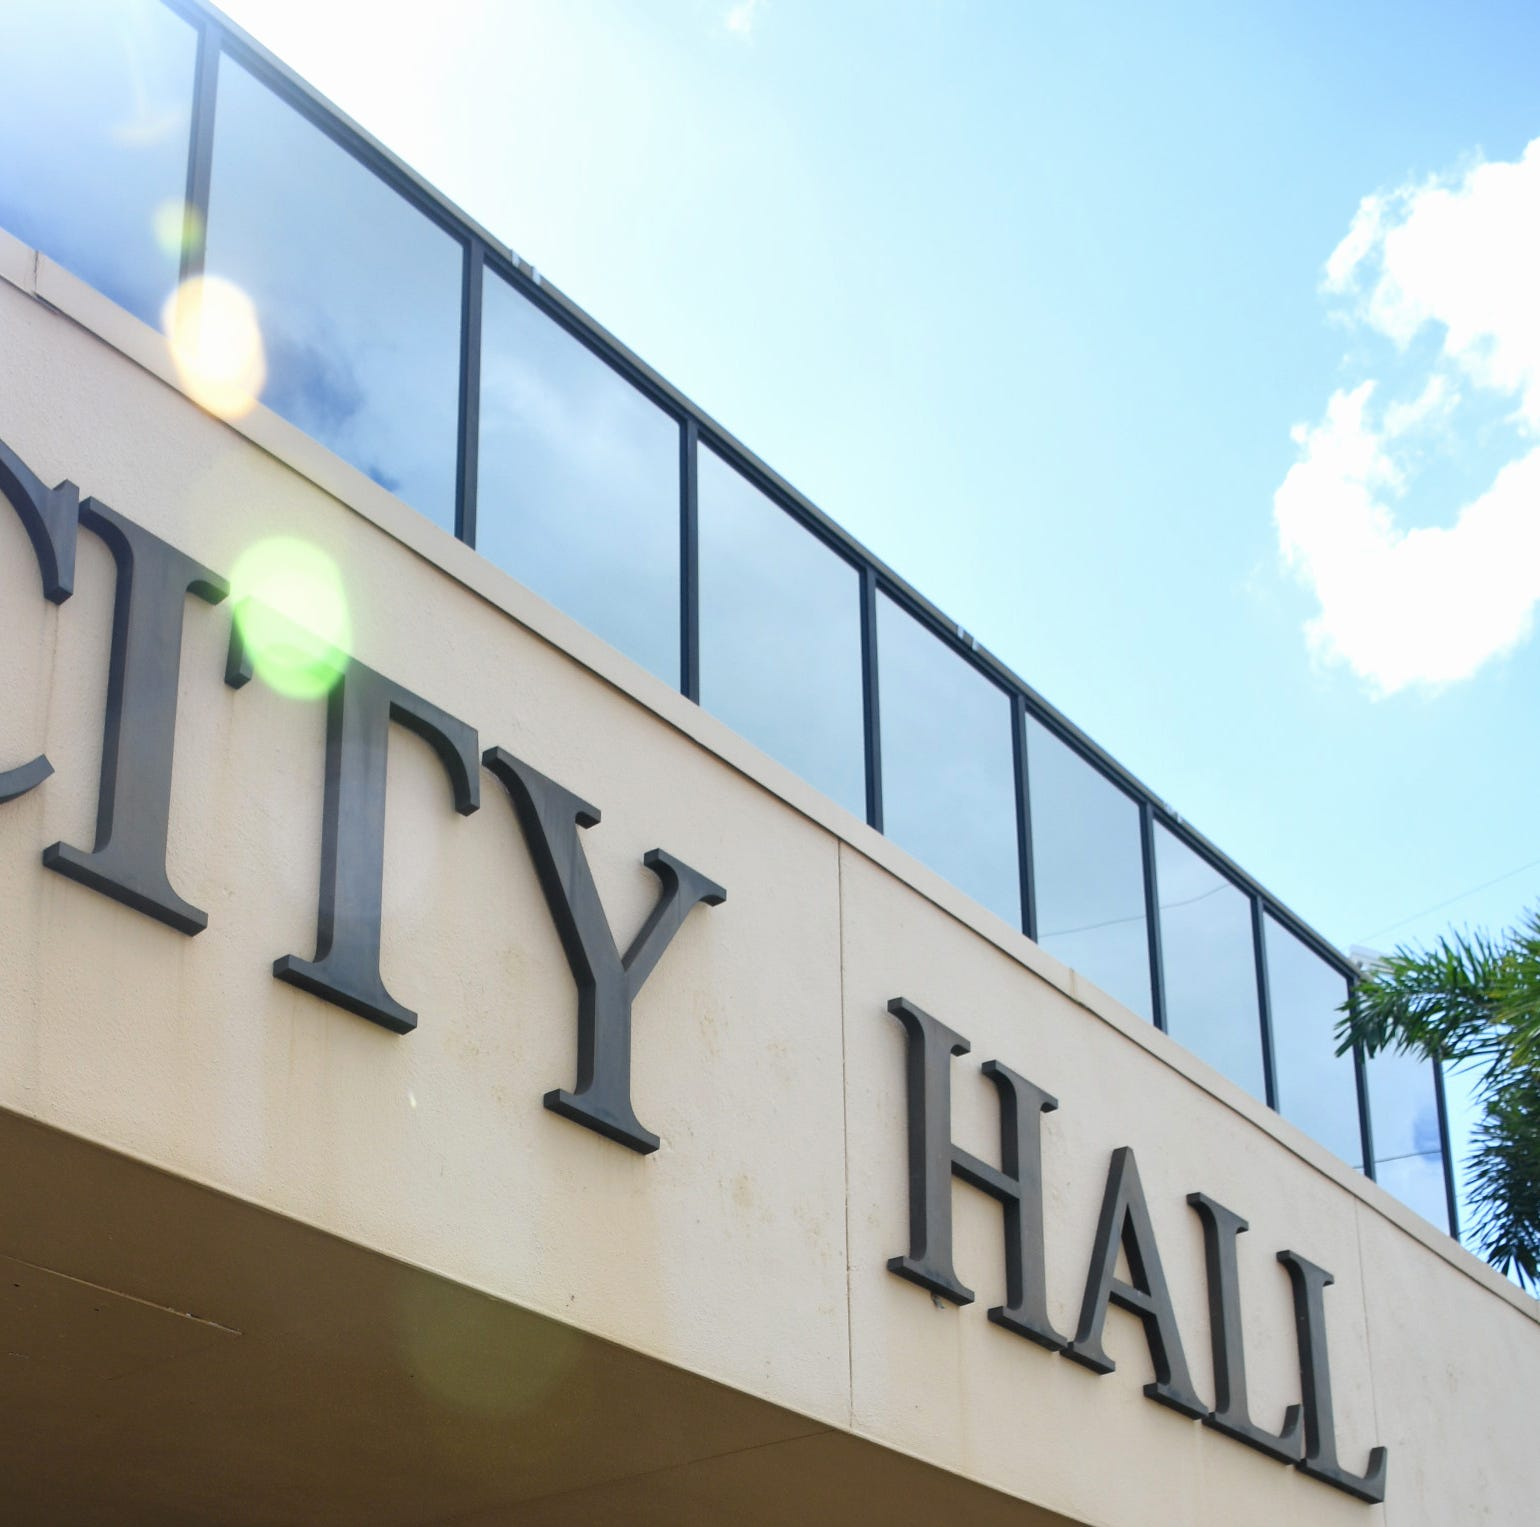 City manager recruitment, mayor discussion on tap for Marco Island City Council